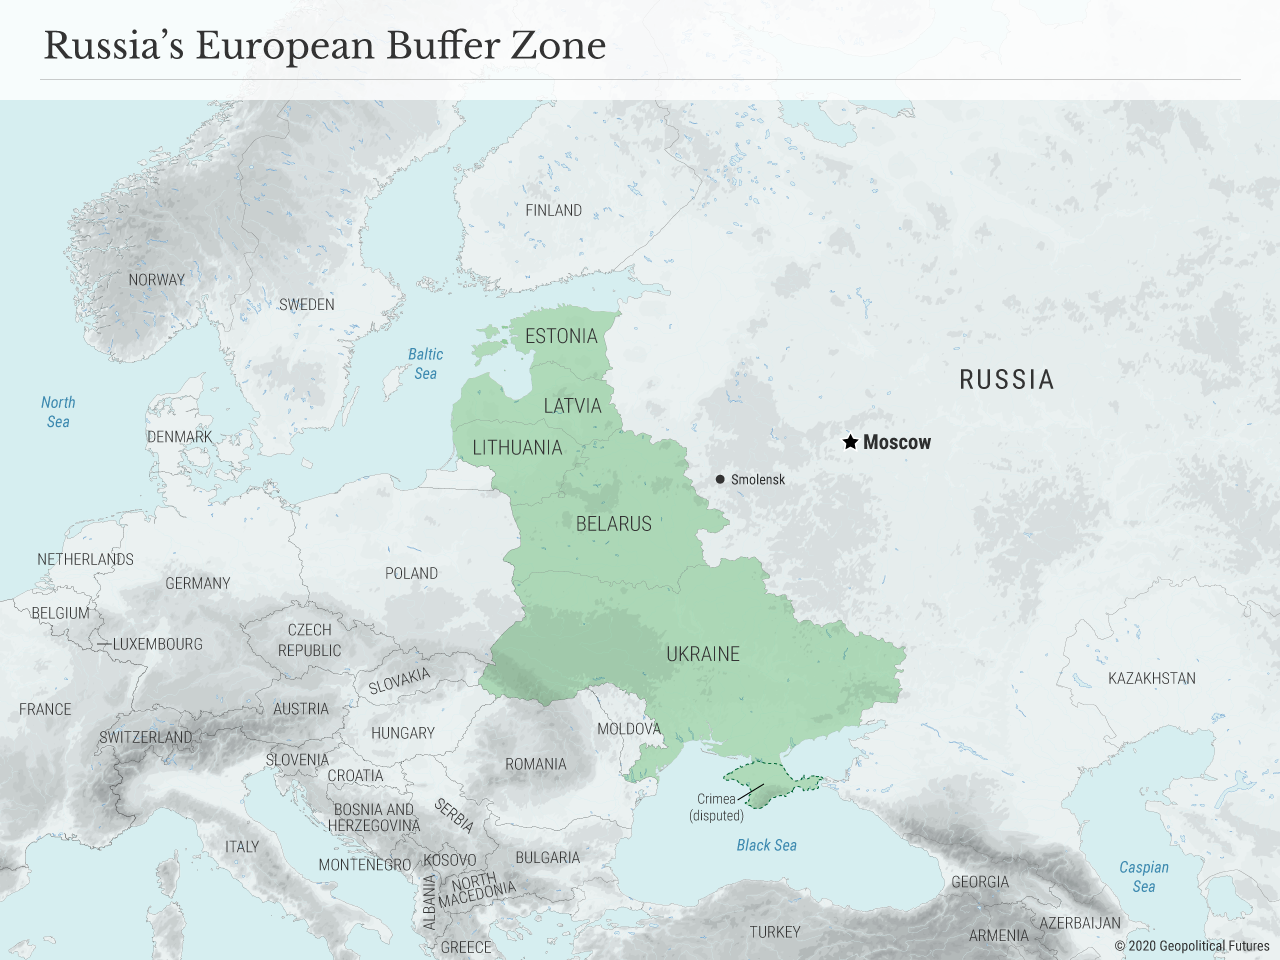 Russia's European Buffer Zone